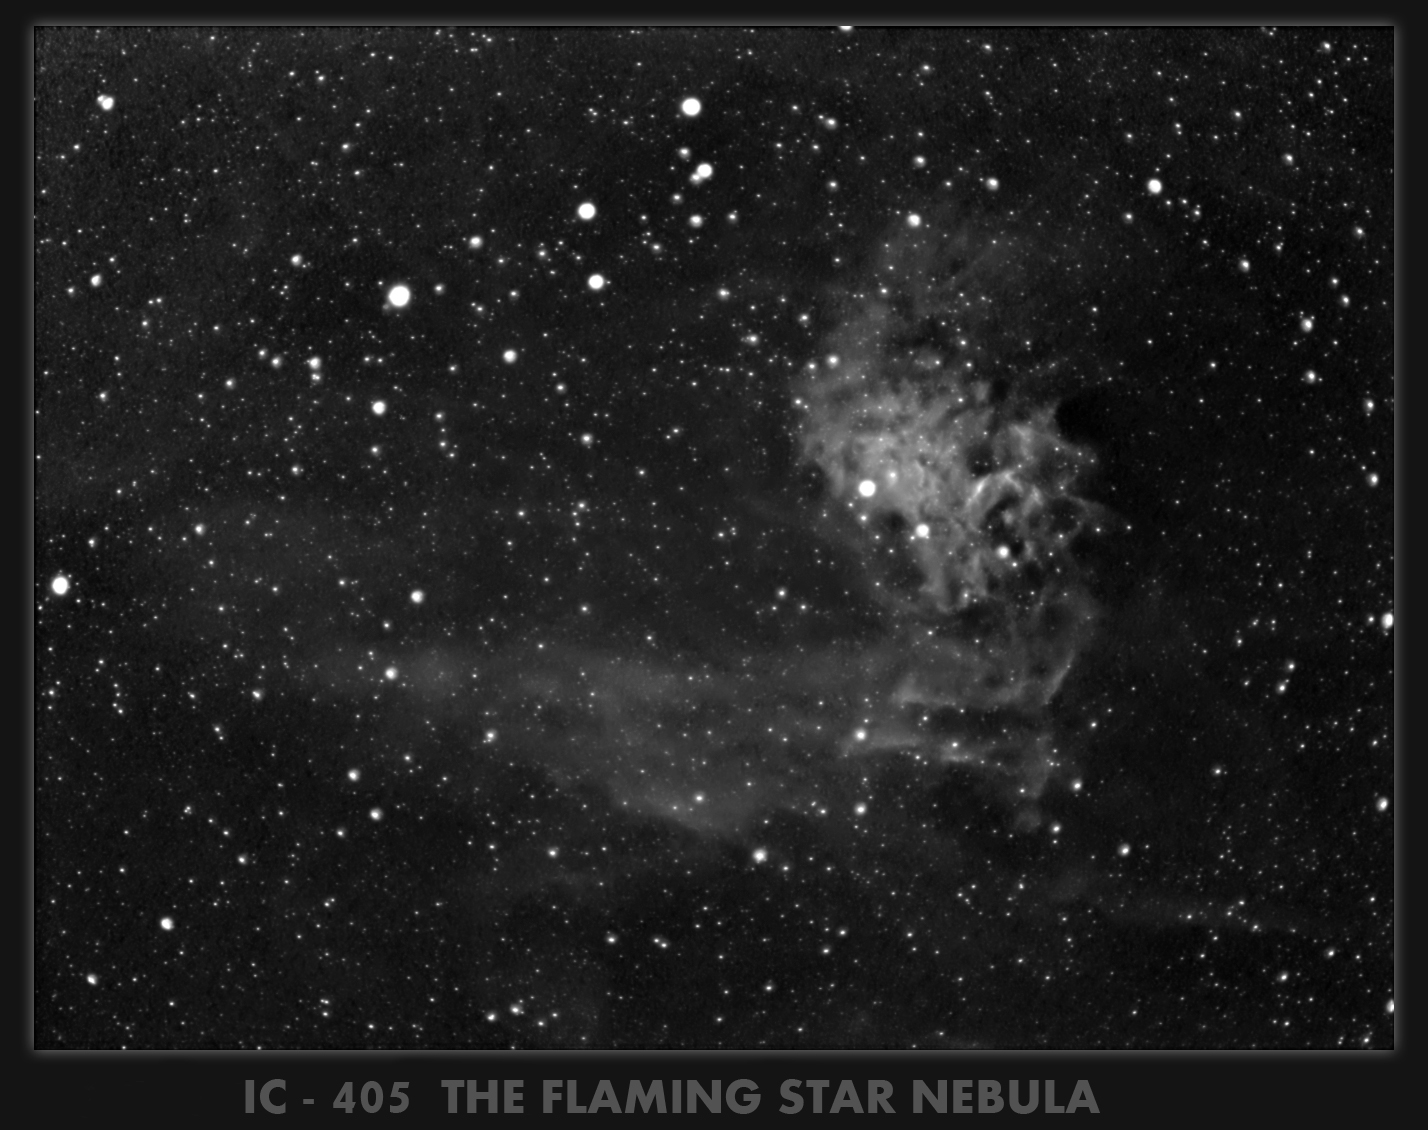 THE FLAMING STAR IN HA